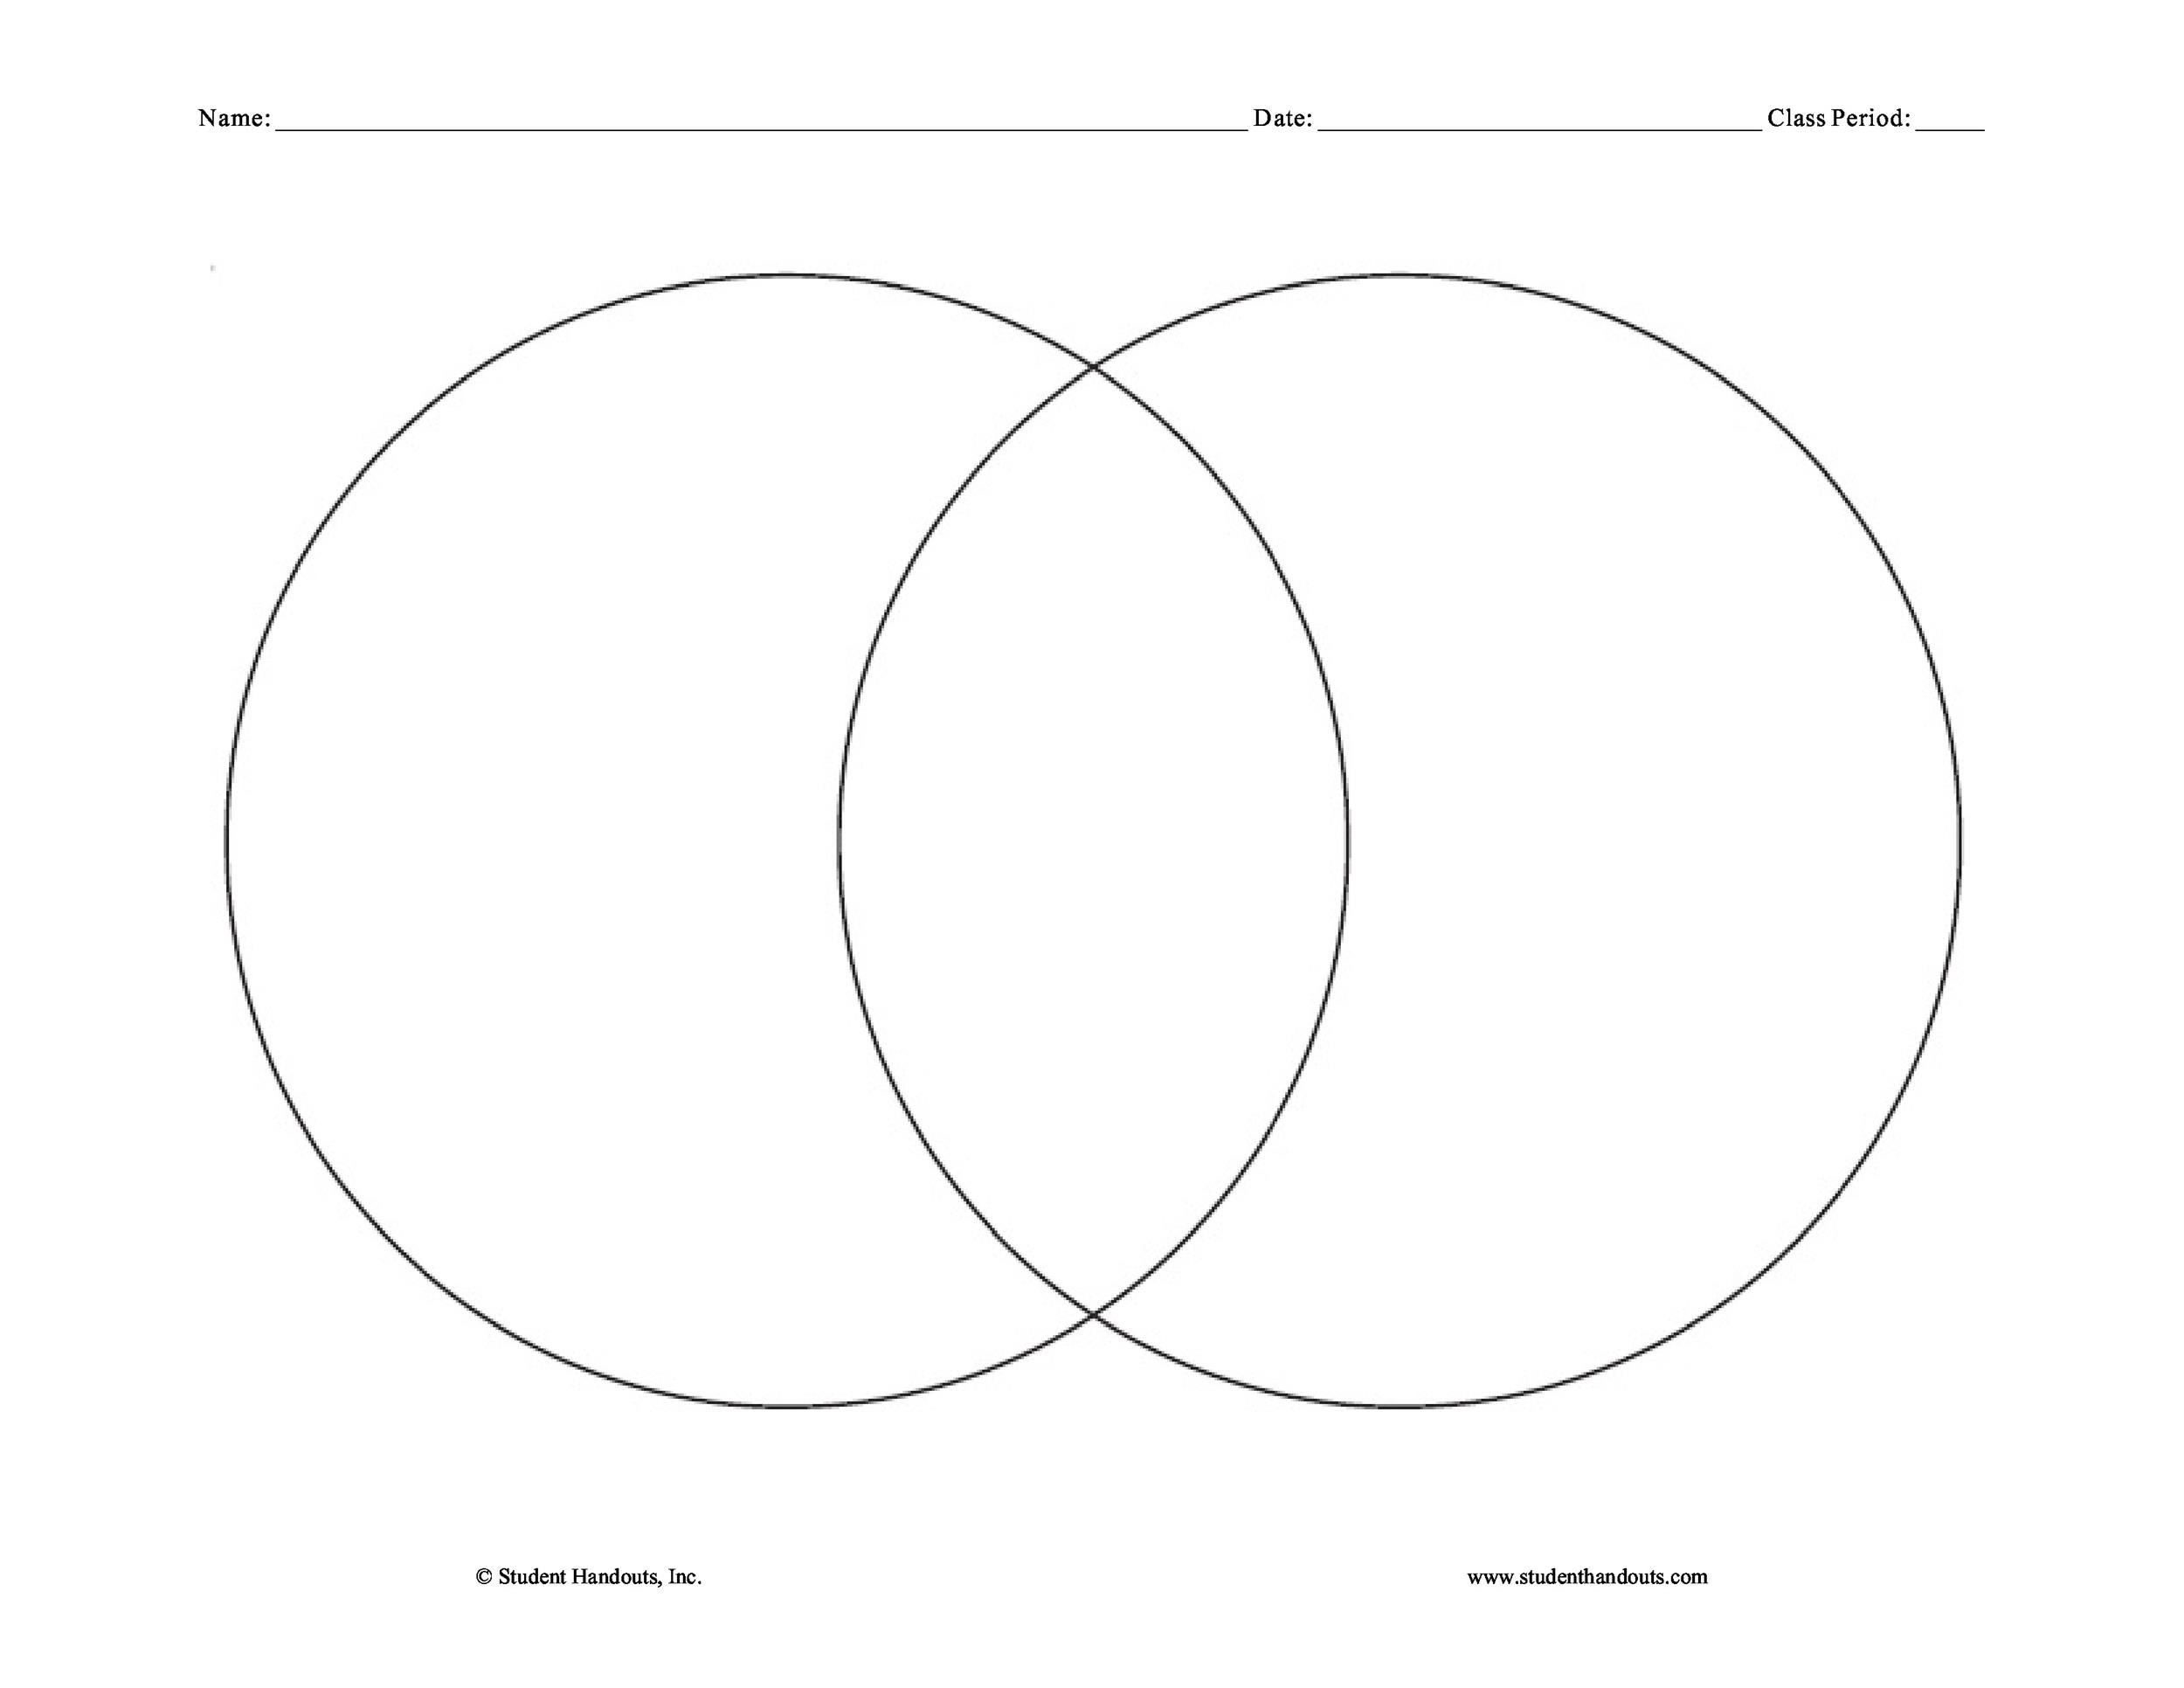 40 Free Venn Diagram Templates Word Pdf ᐅ Template Lab